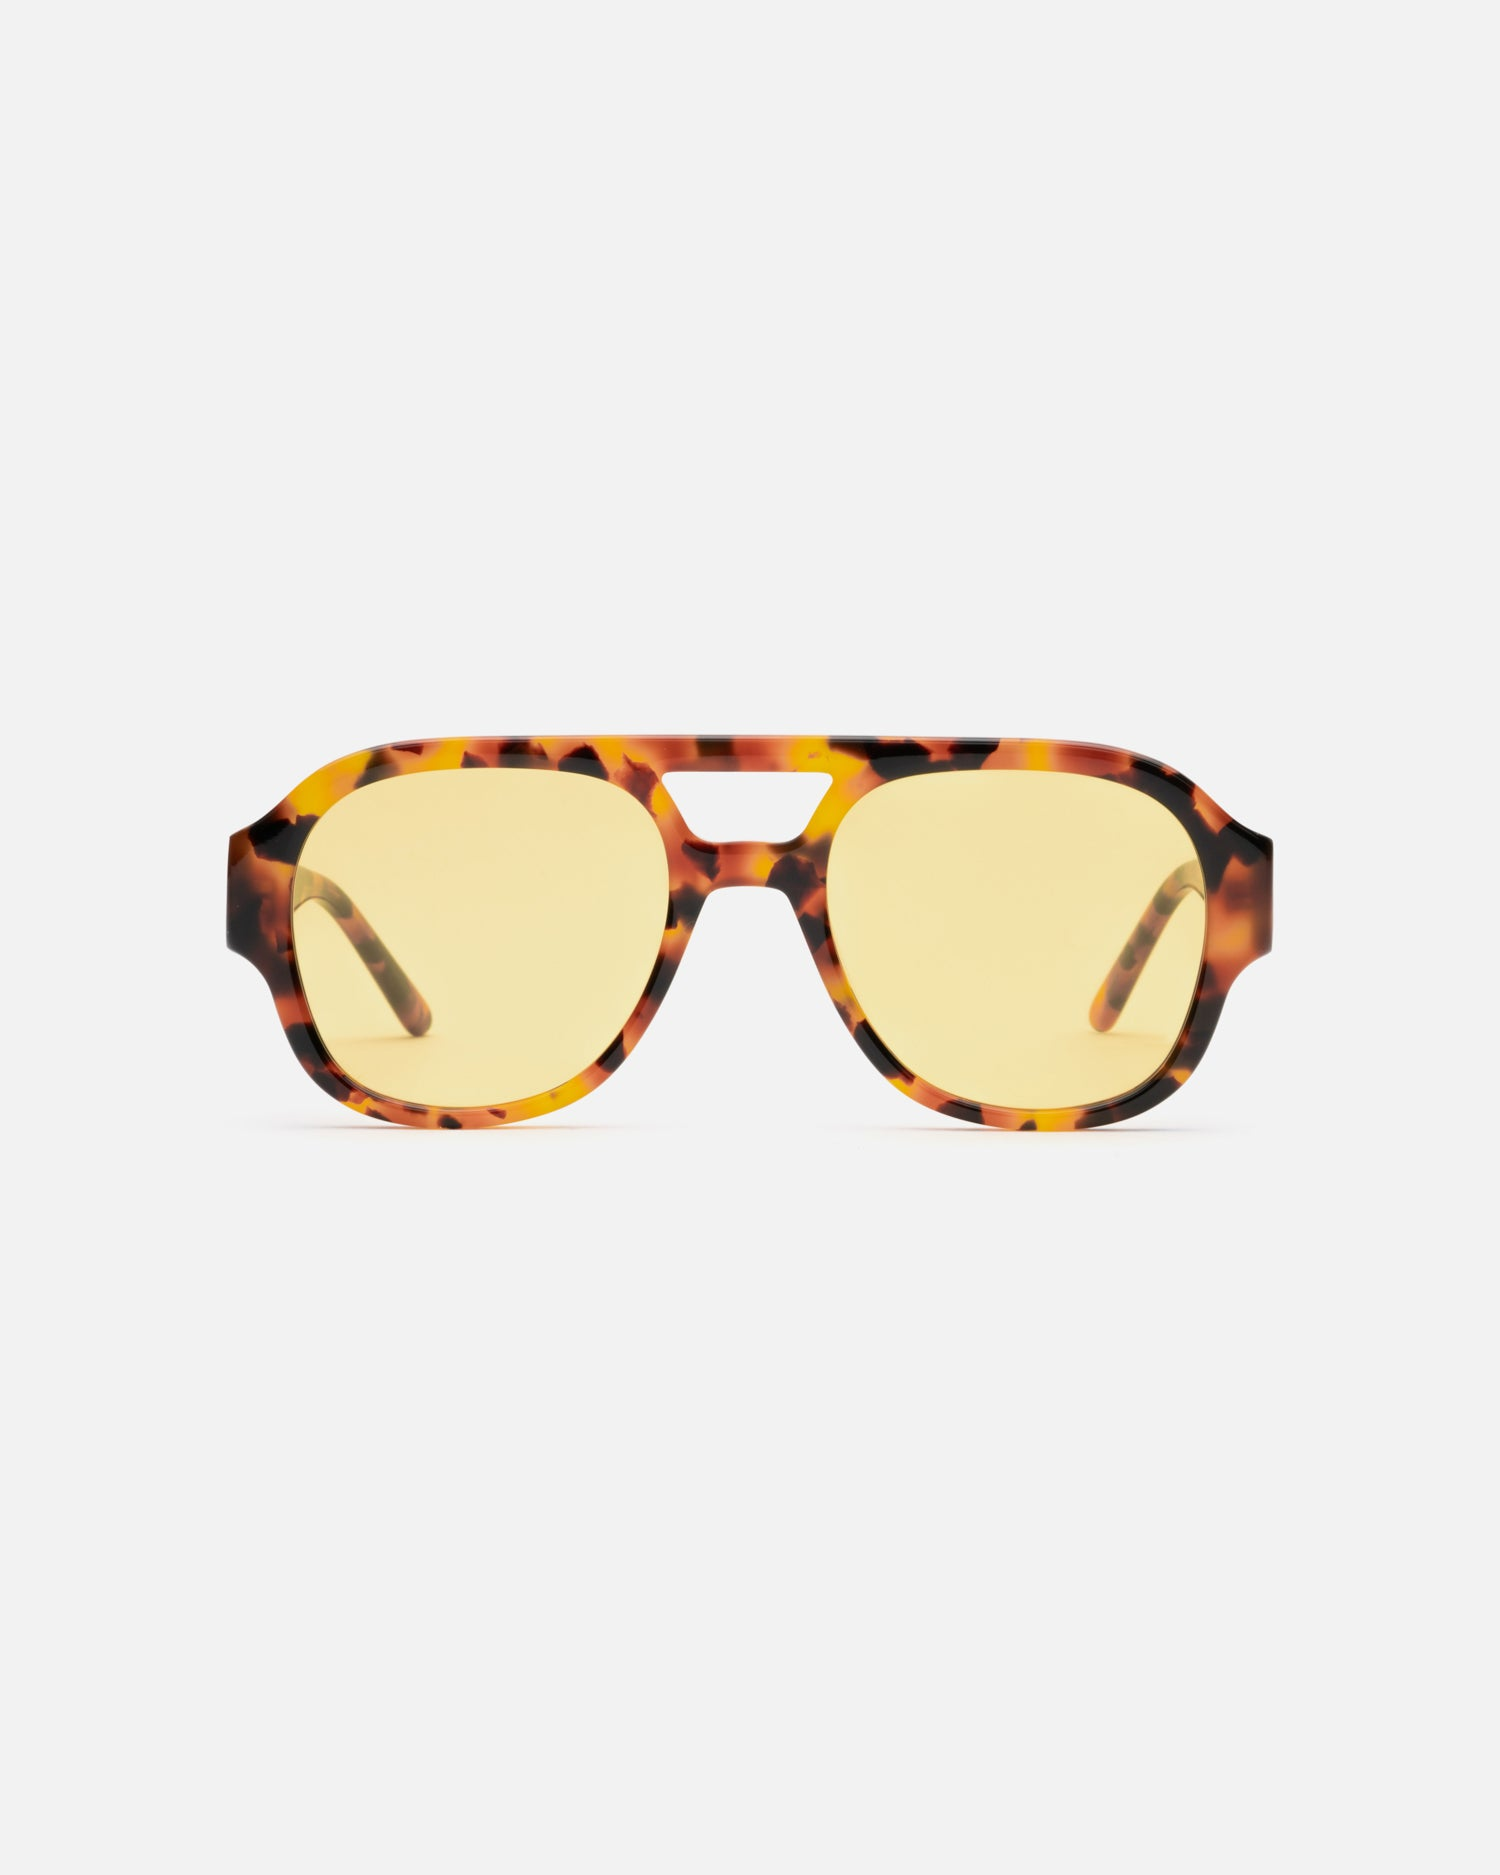 Lu Goldie x Ruby Tuesday Matthews collaboration sunglasses in Tortoise with yellow lens, front image